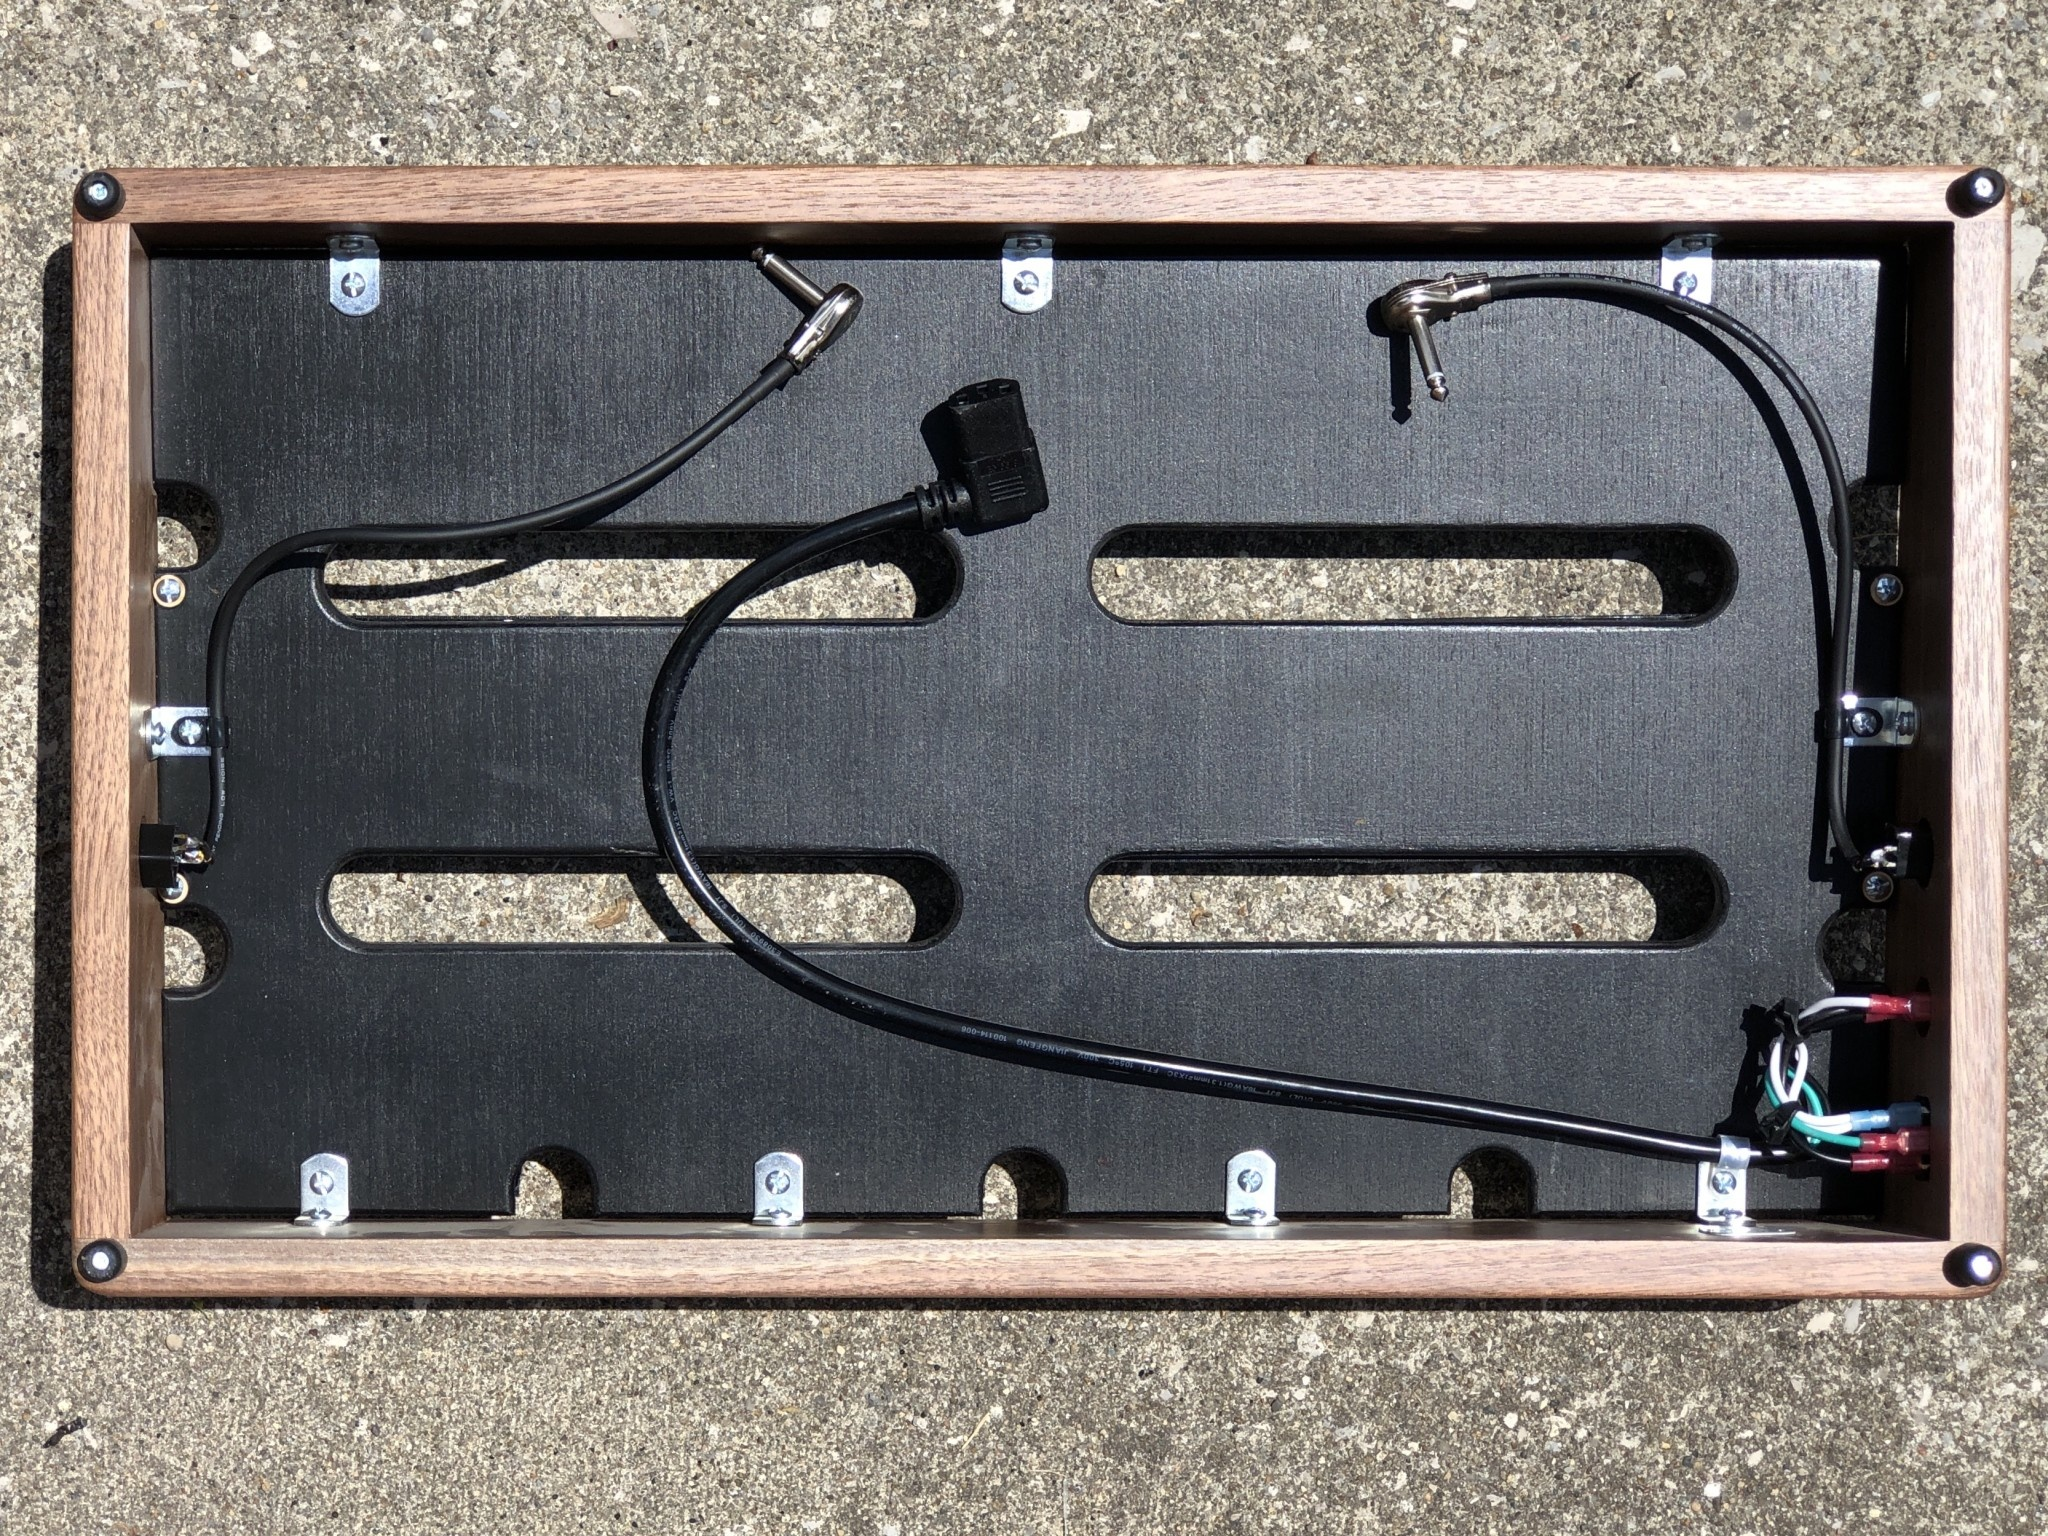 "Indy String Theory Walnut 24""x14"" Pedalboard S/N. 22-5"